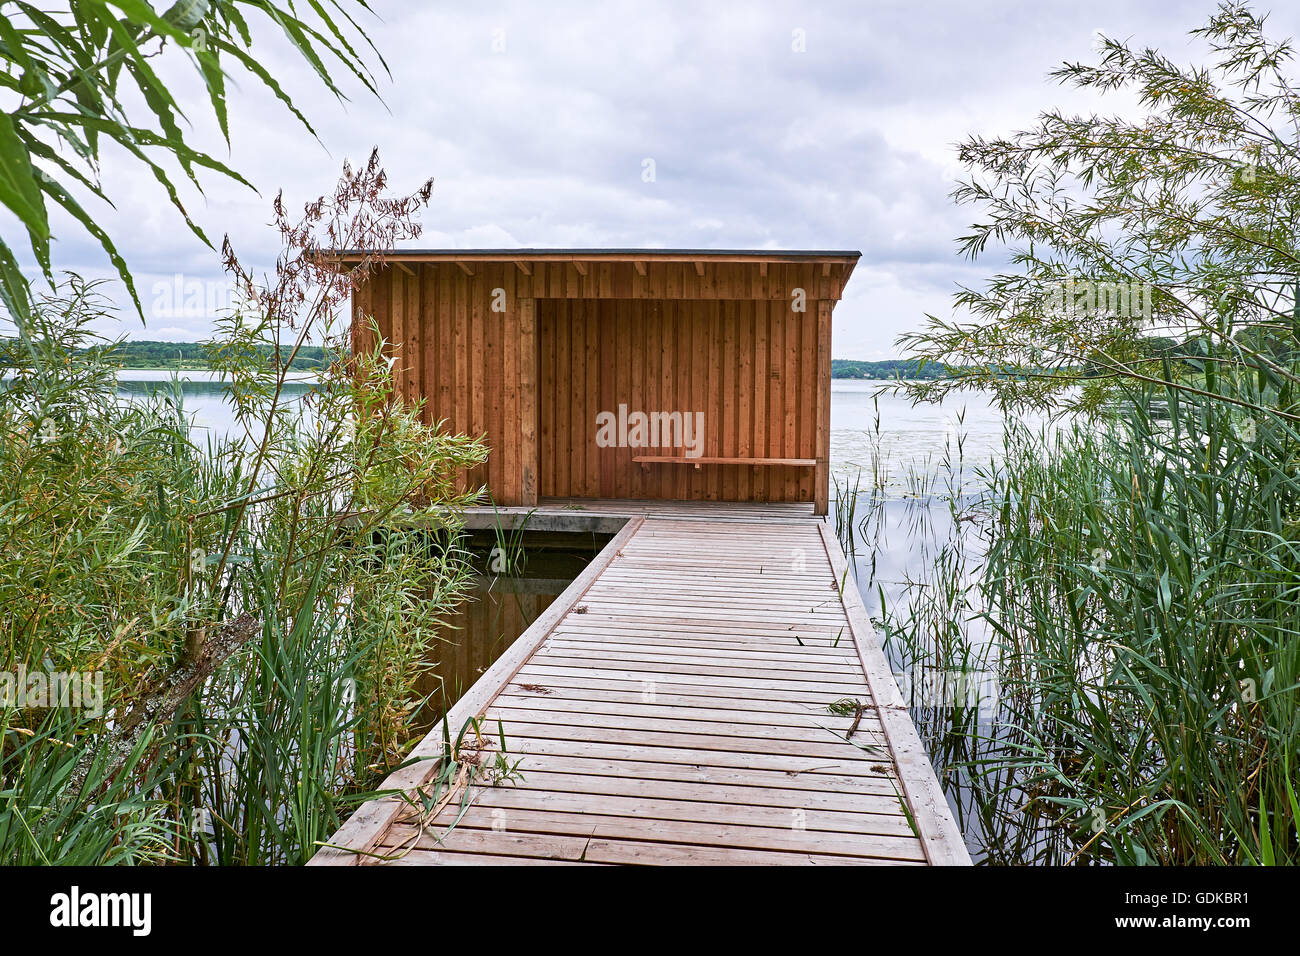 Birdwatch shelter with board on board wood cladding, at the end of a wooden jetty going out in the water of a lake - Stock Image